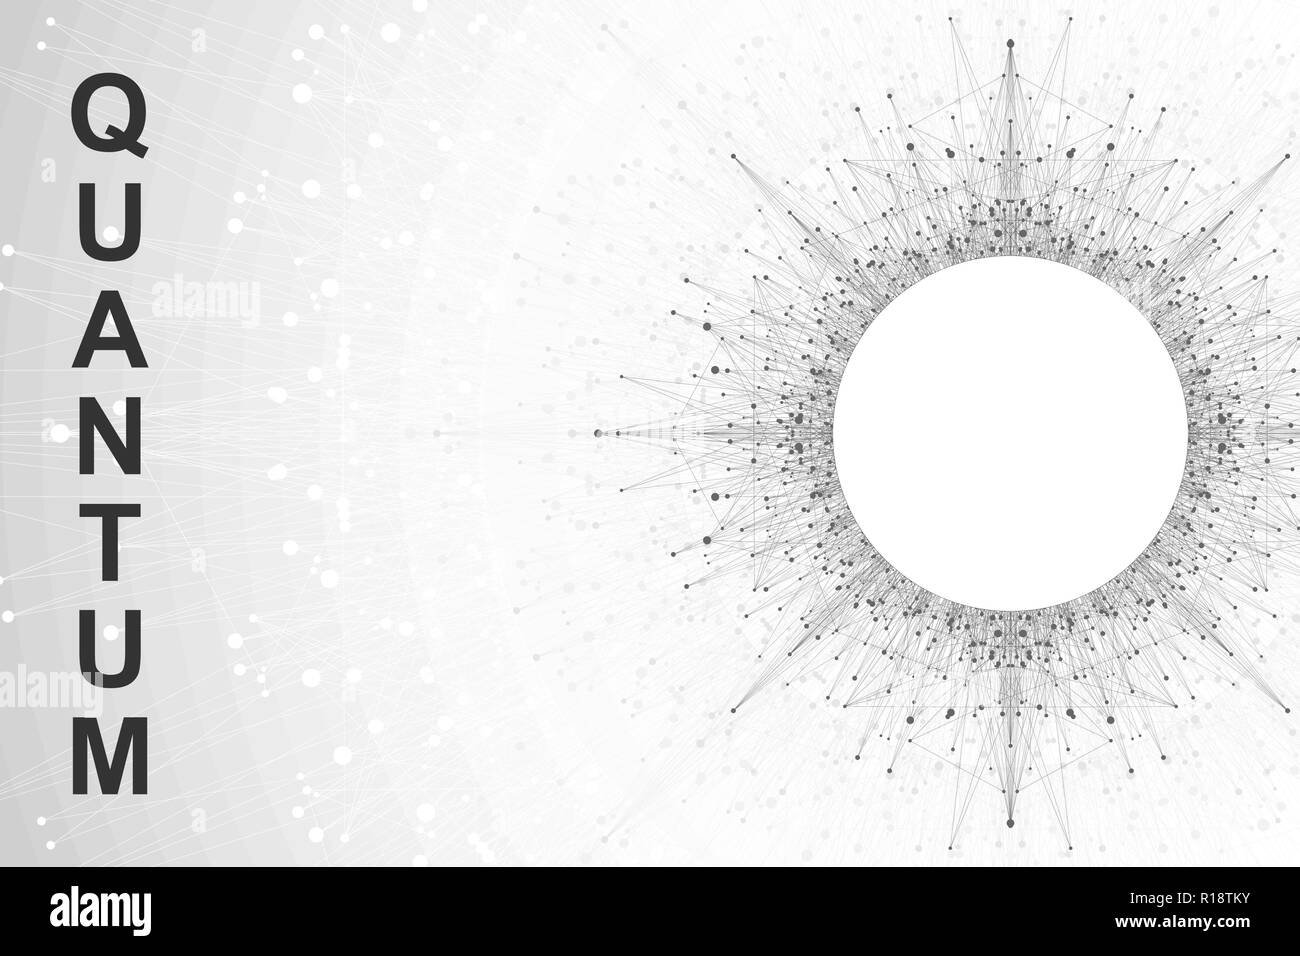 Quantum computer technology concept. Deep learning artificial intelligence. Big data algorithms visualization for business, science, technology. Waves flow, dots, lines. Quantum vector illustration - Stock Image